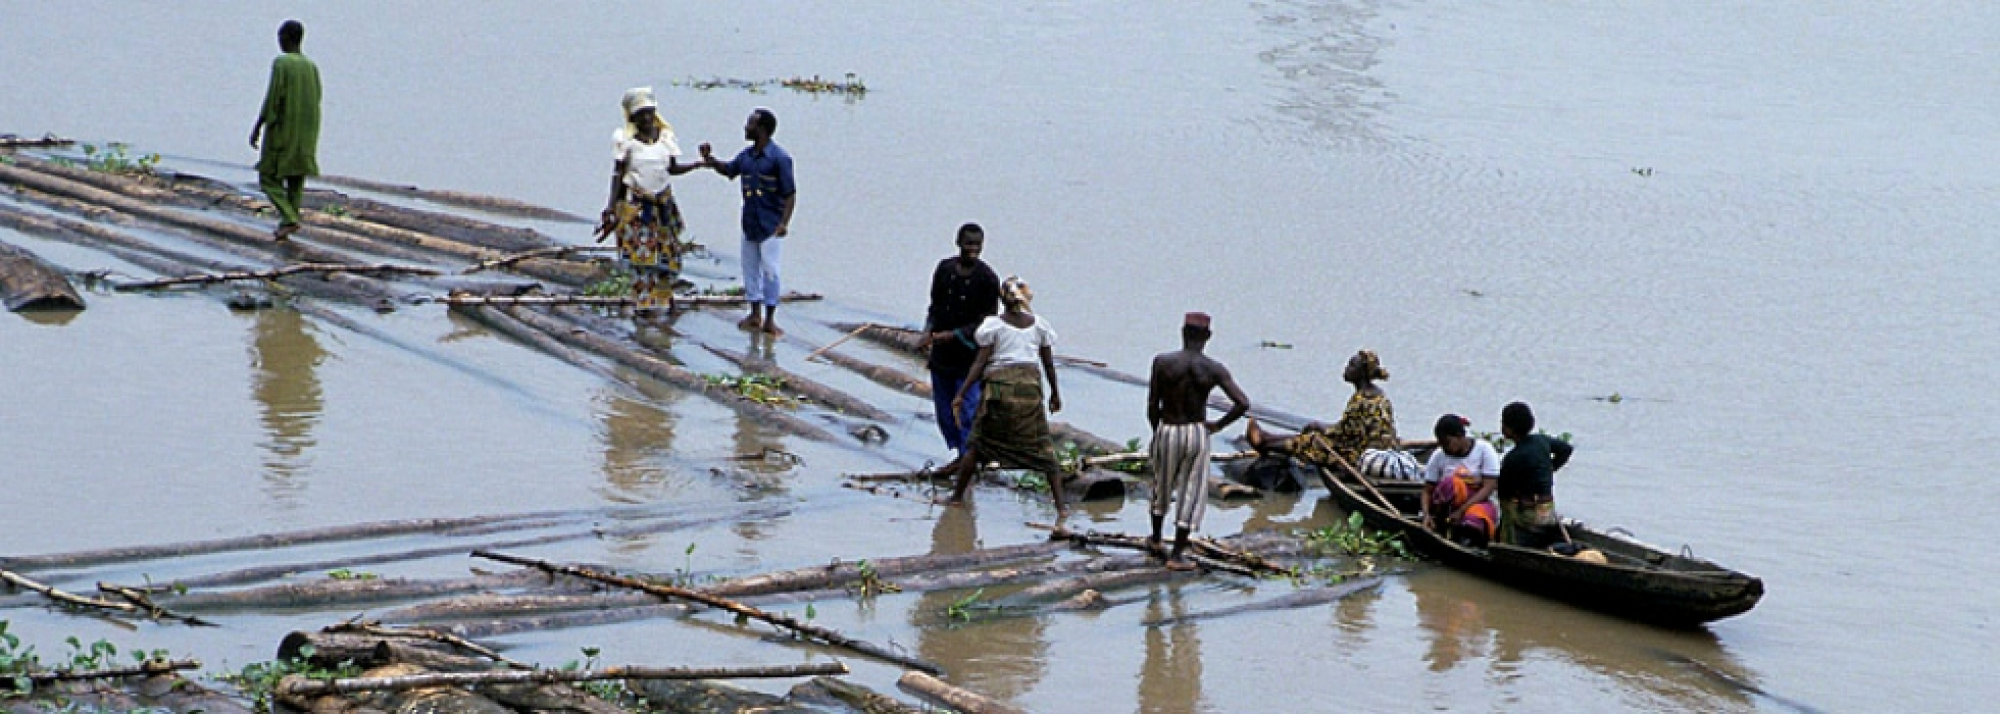 People traveling on rafts and boats in Nigeria.